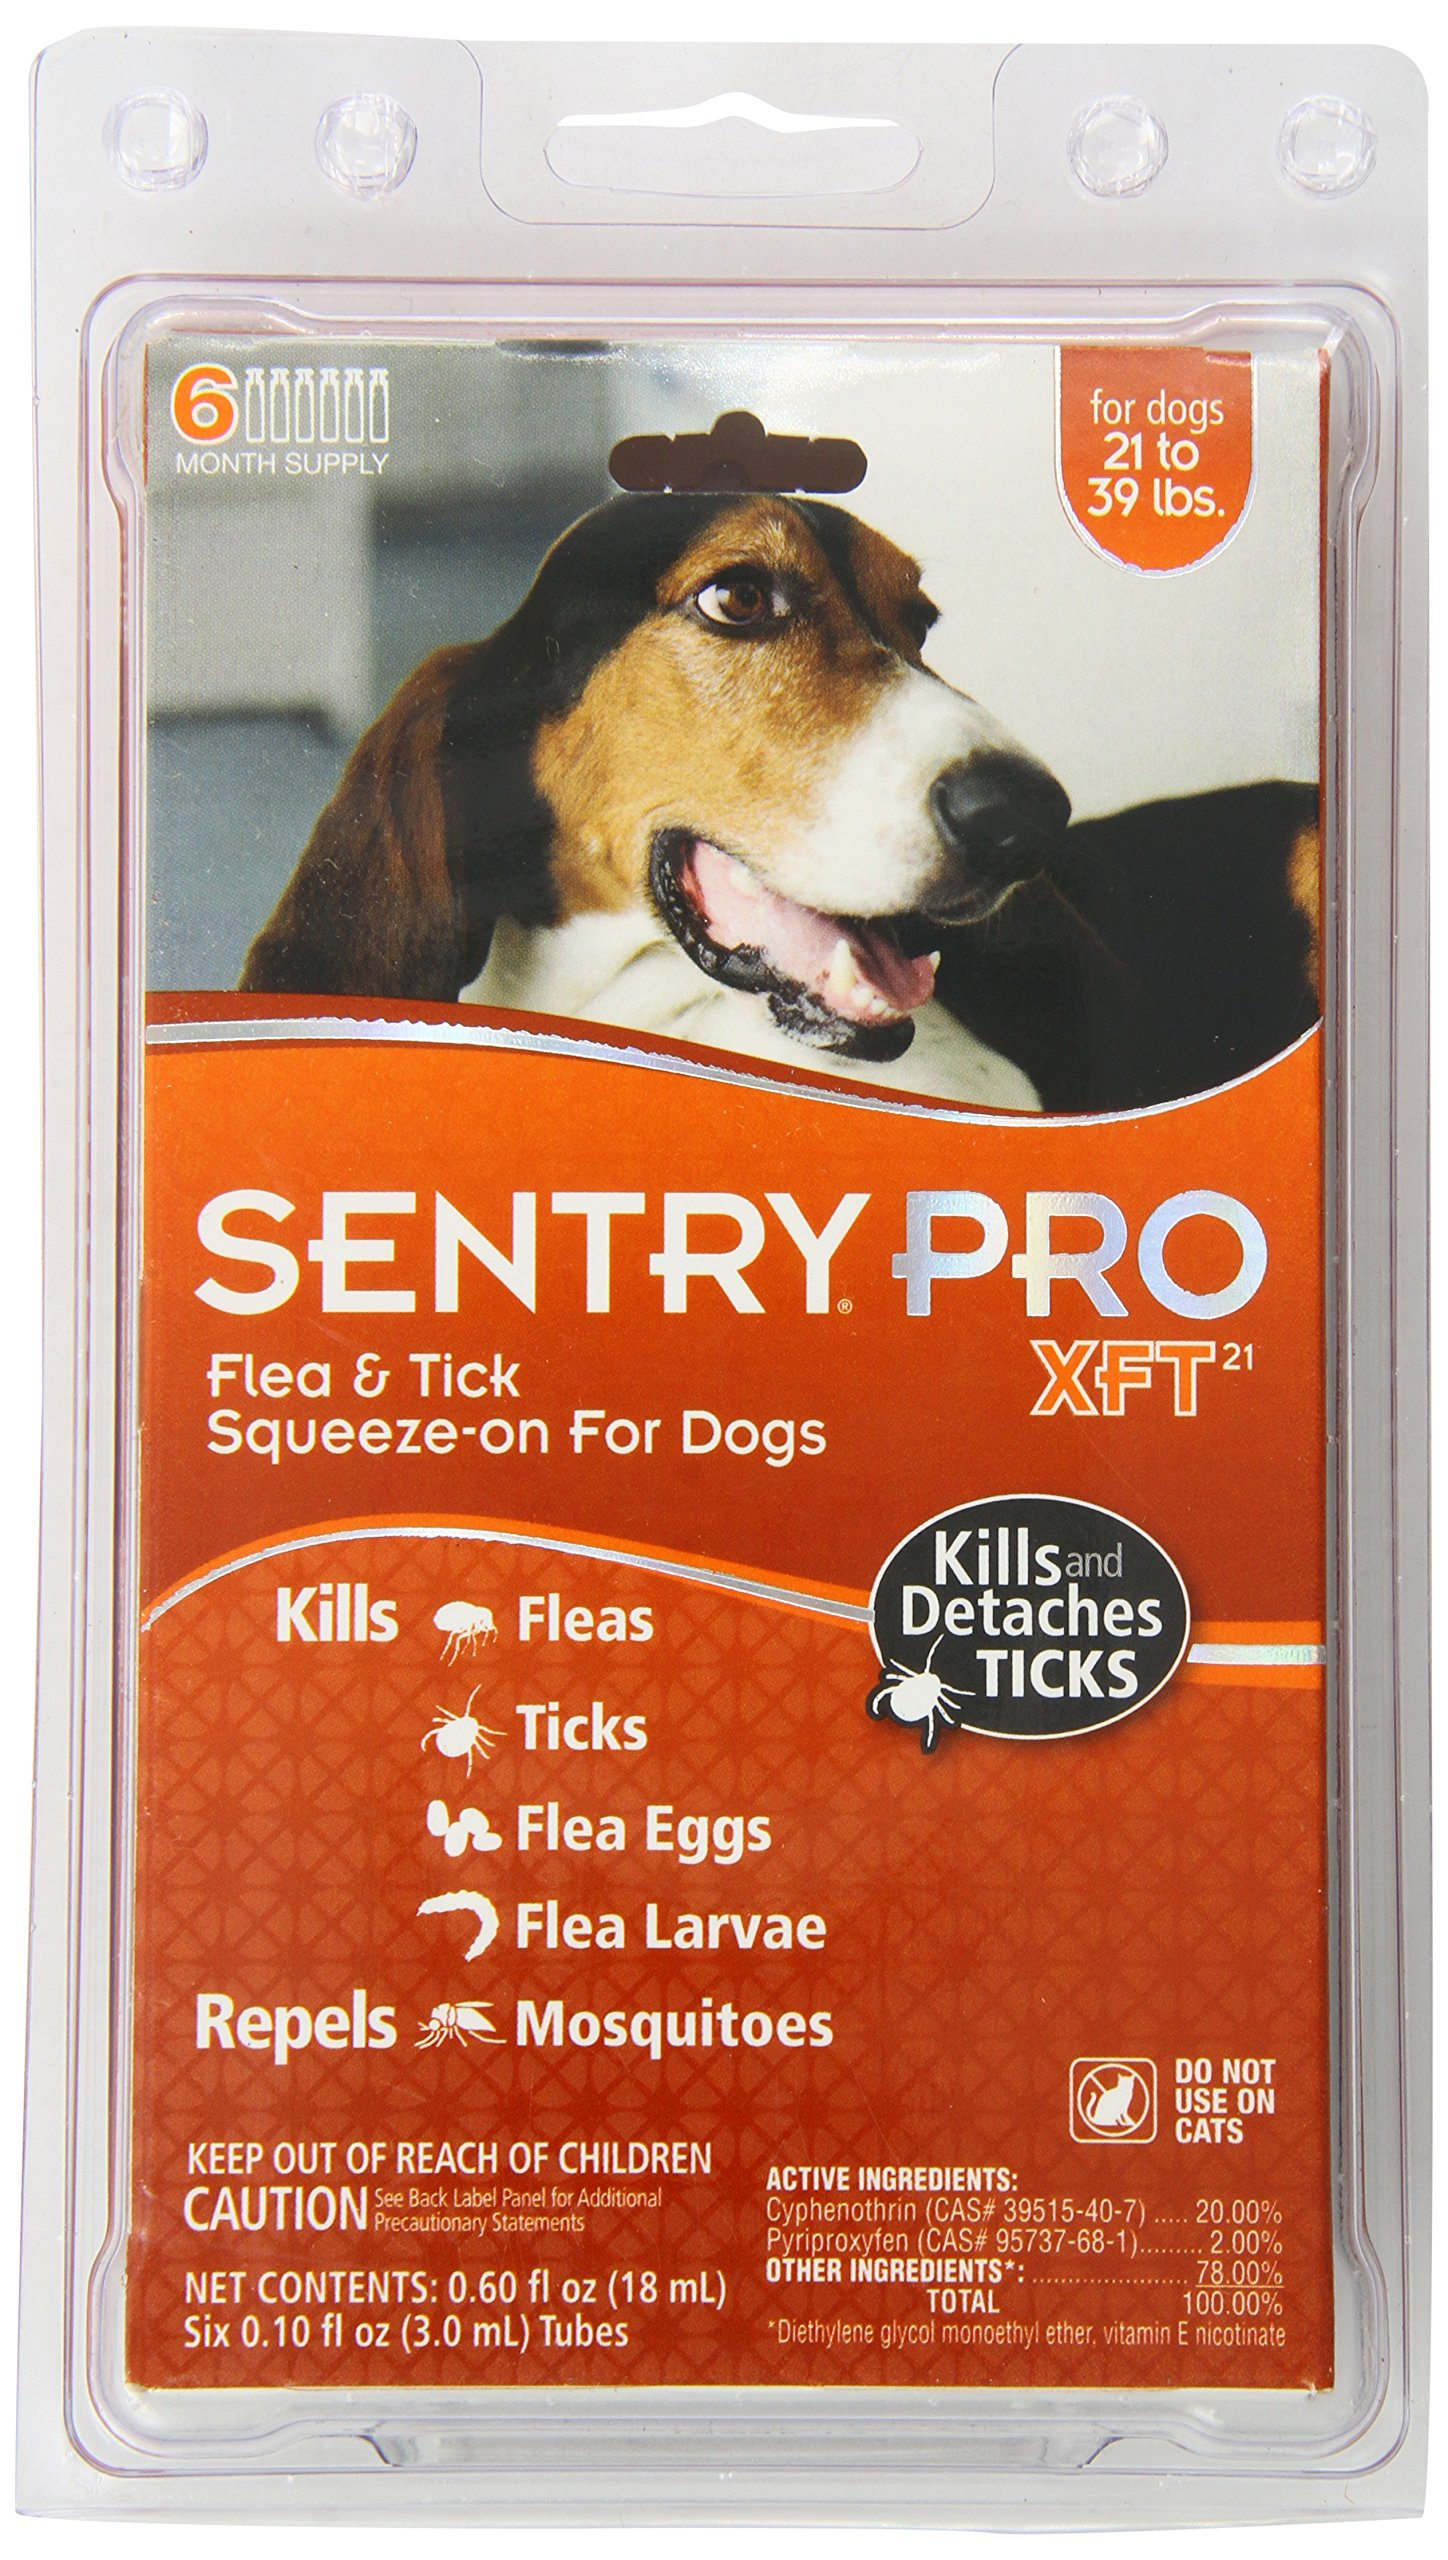 SENTRY PRO XFT 21 Flea and Tick Topical for Dogs, 21-39 lbs, 6 Month Supply